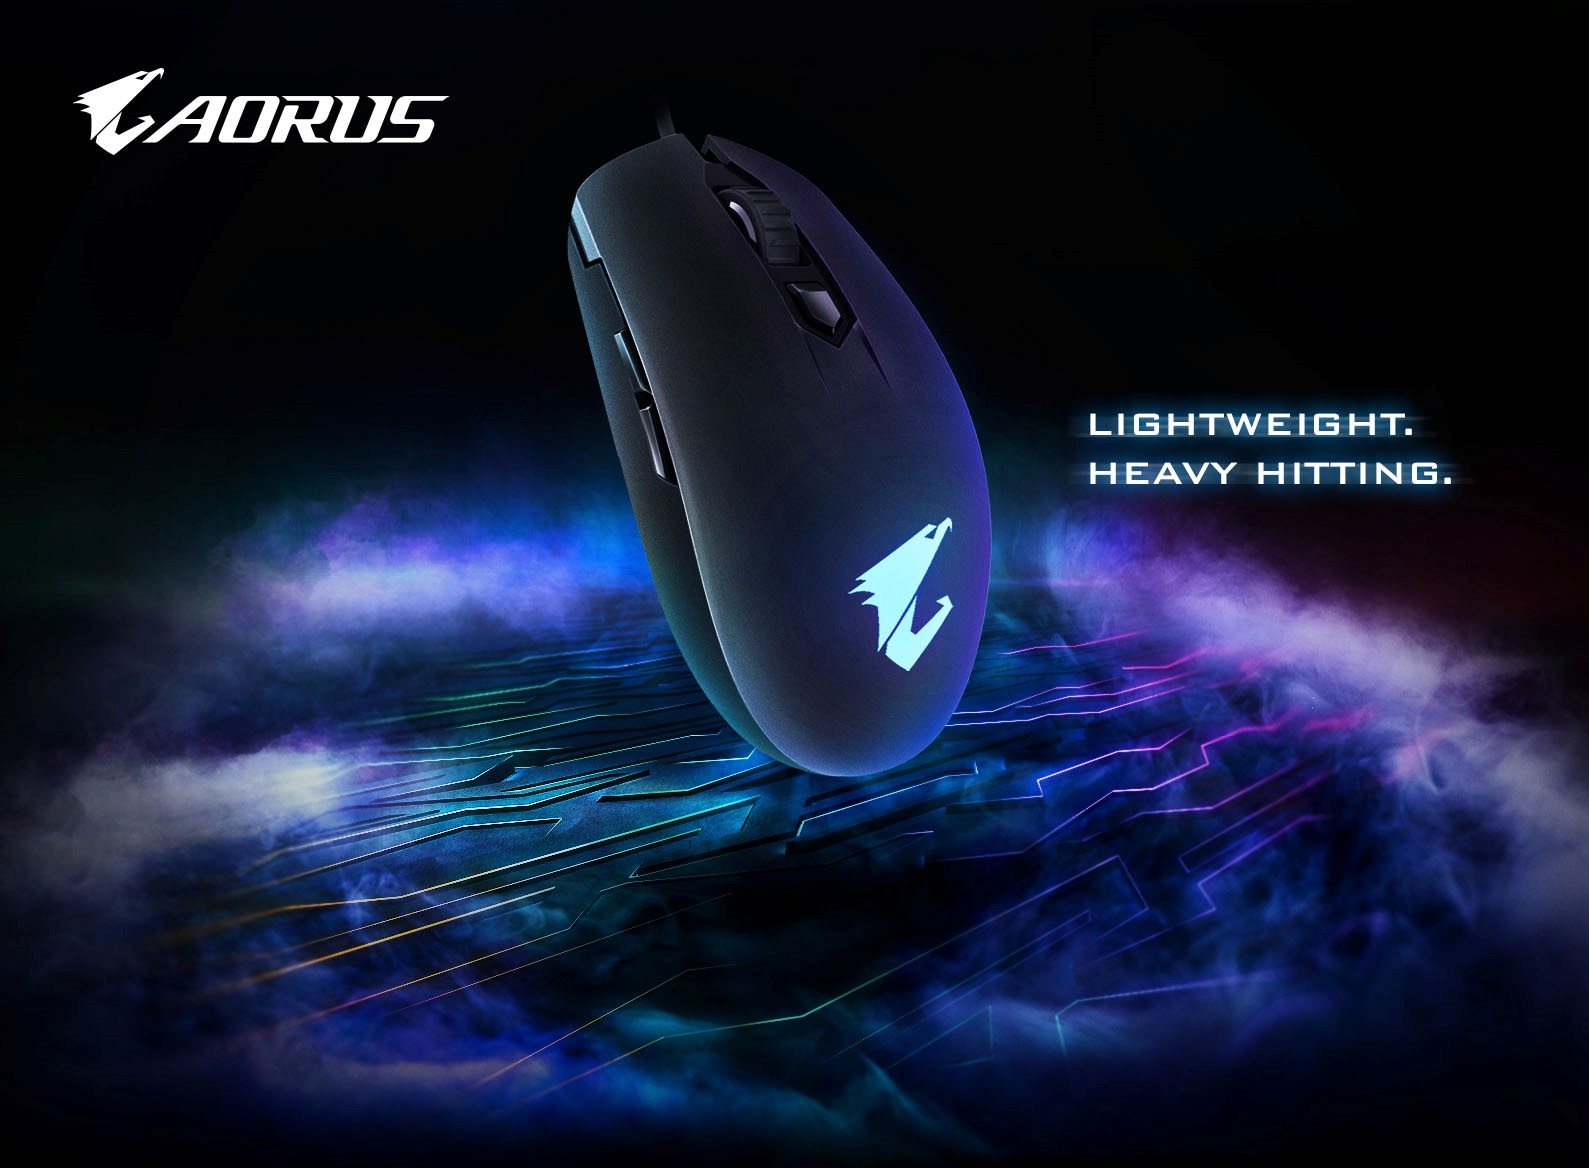 9215e52eafb Taipei, Taiwan, April 8th, 2019 – GIGABYTE, the world's leading premium  gaming hardware manufacturer, today announced the release of new AORUS  gaming gear, ...